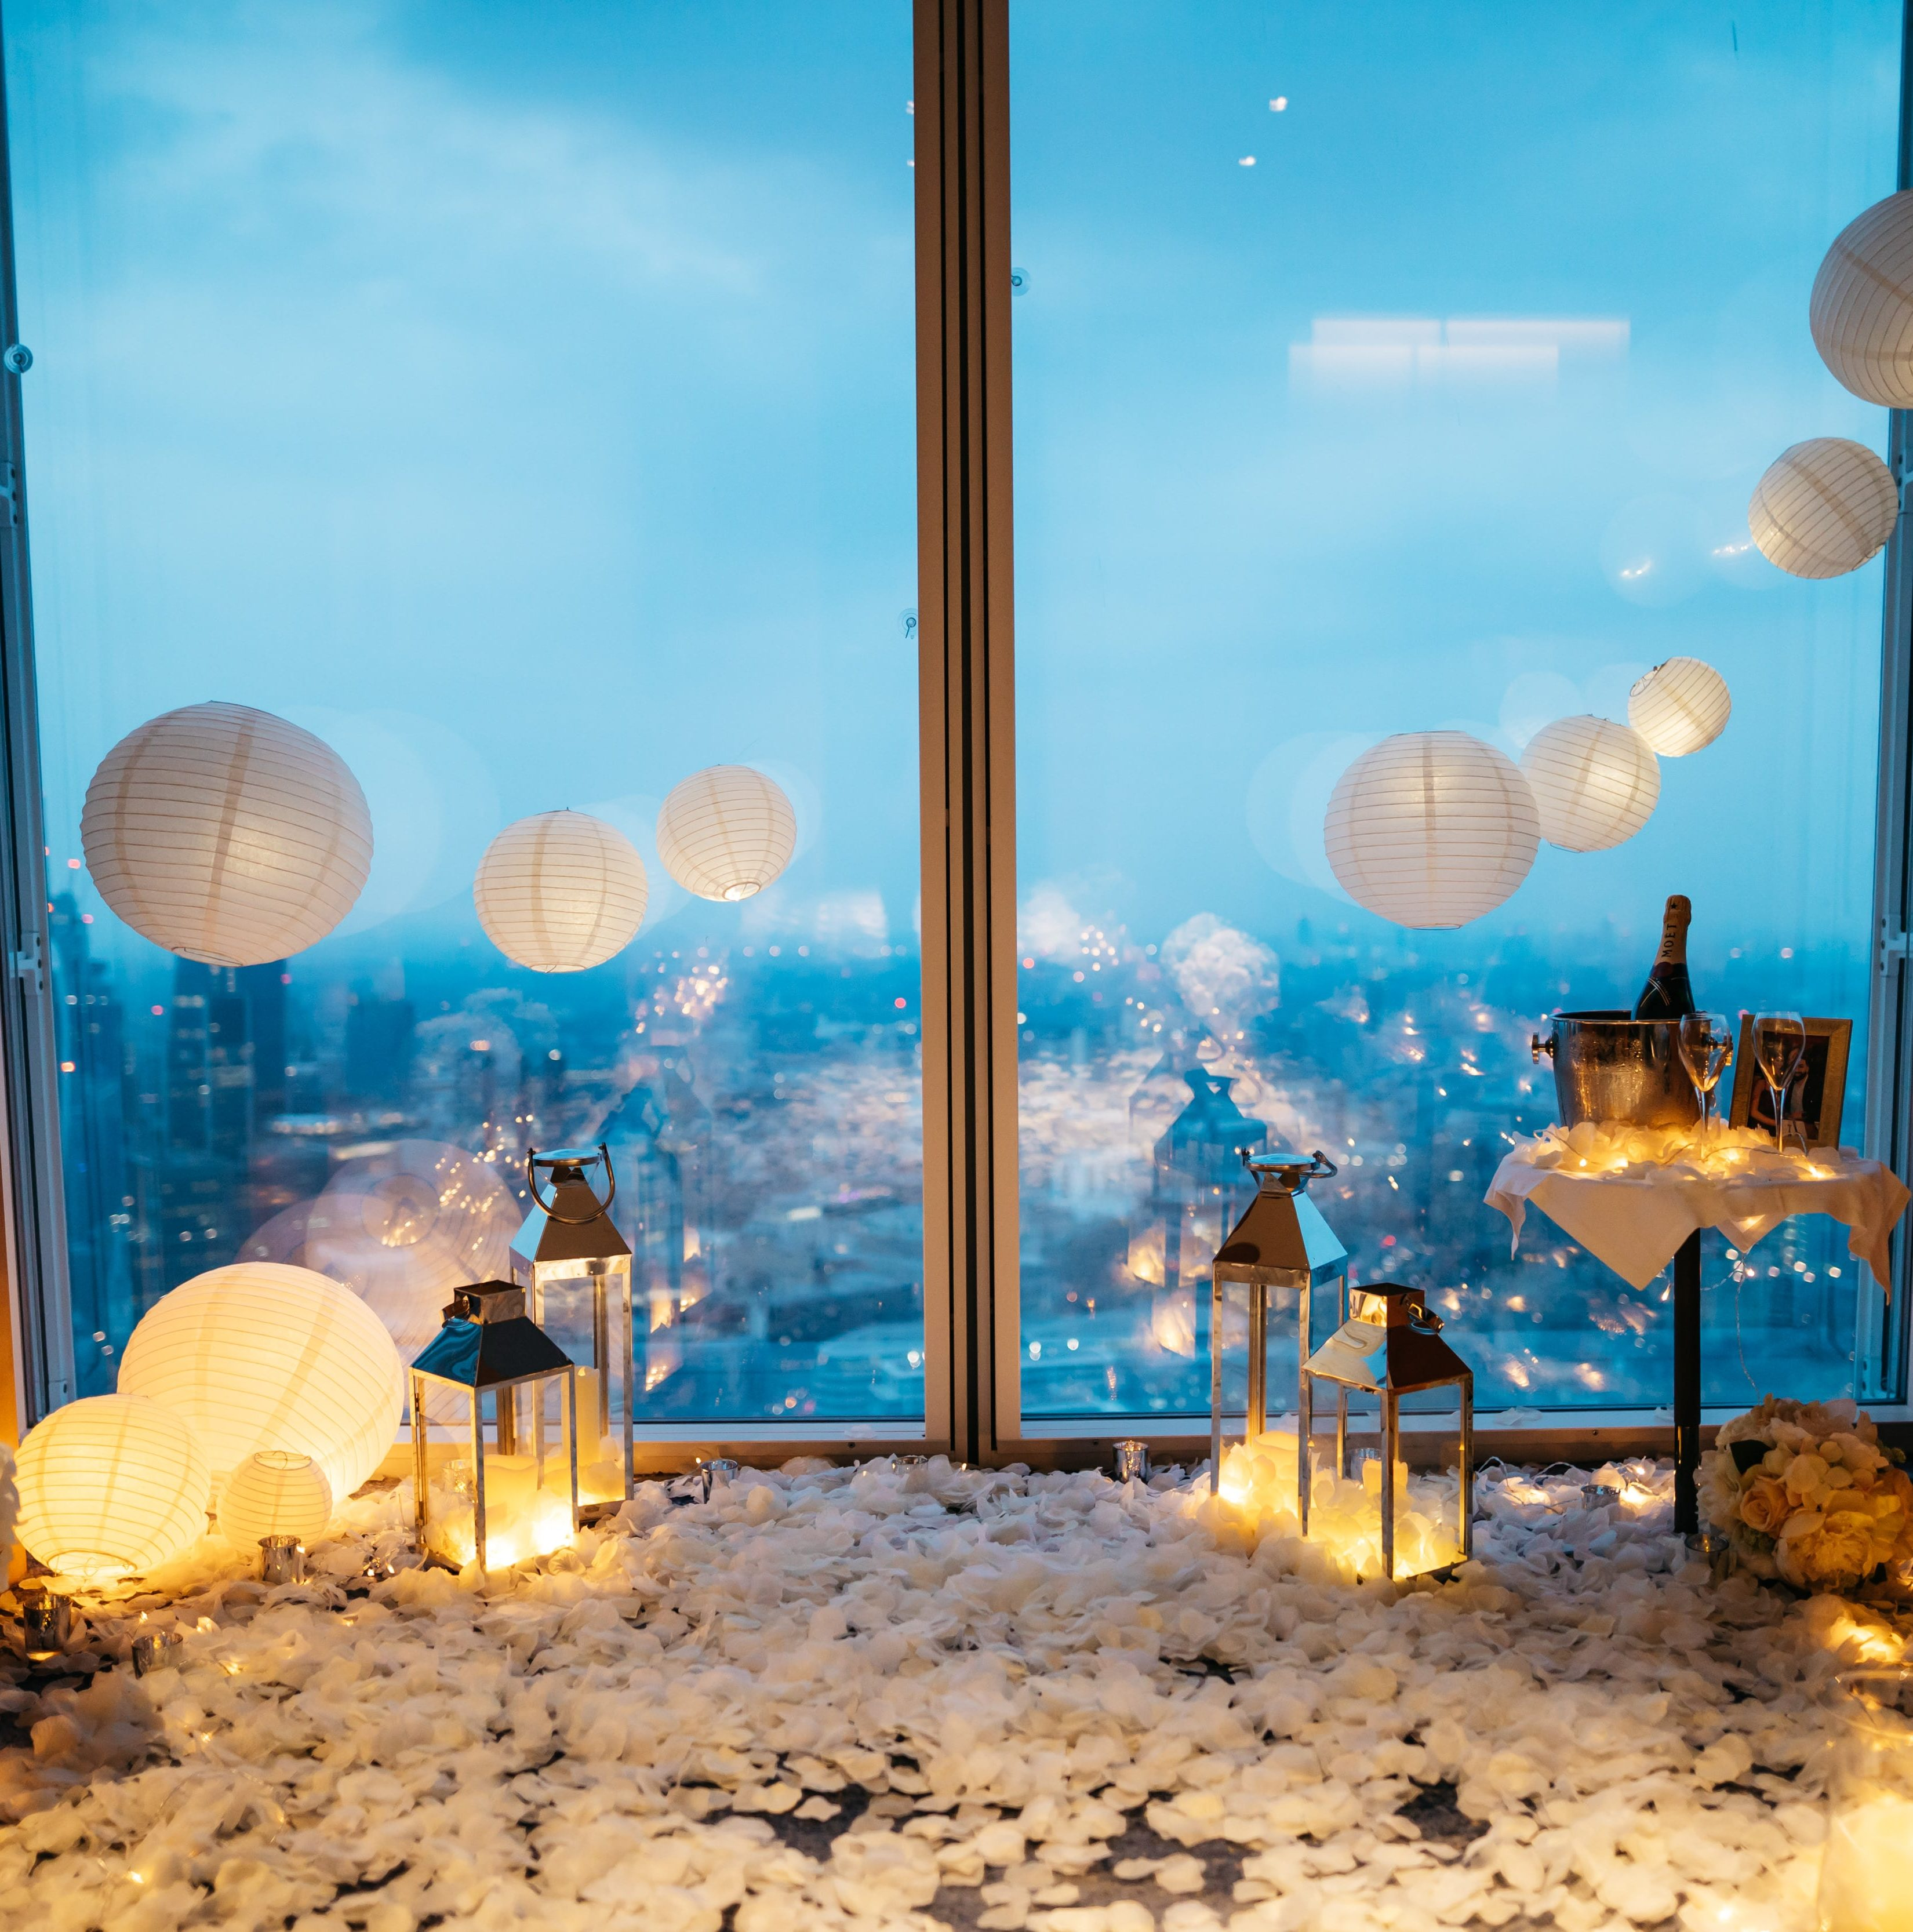 Room Decor Proposal Package The One Romance